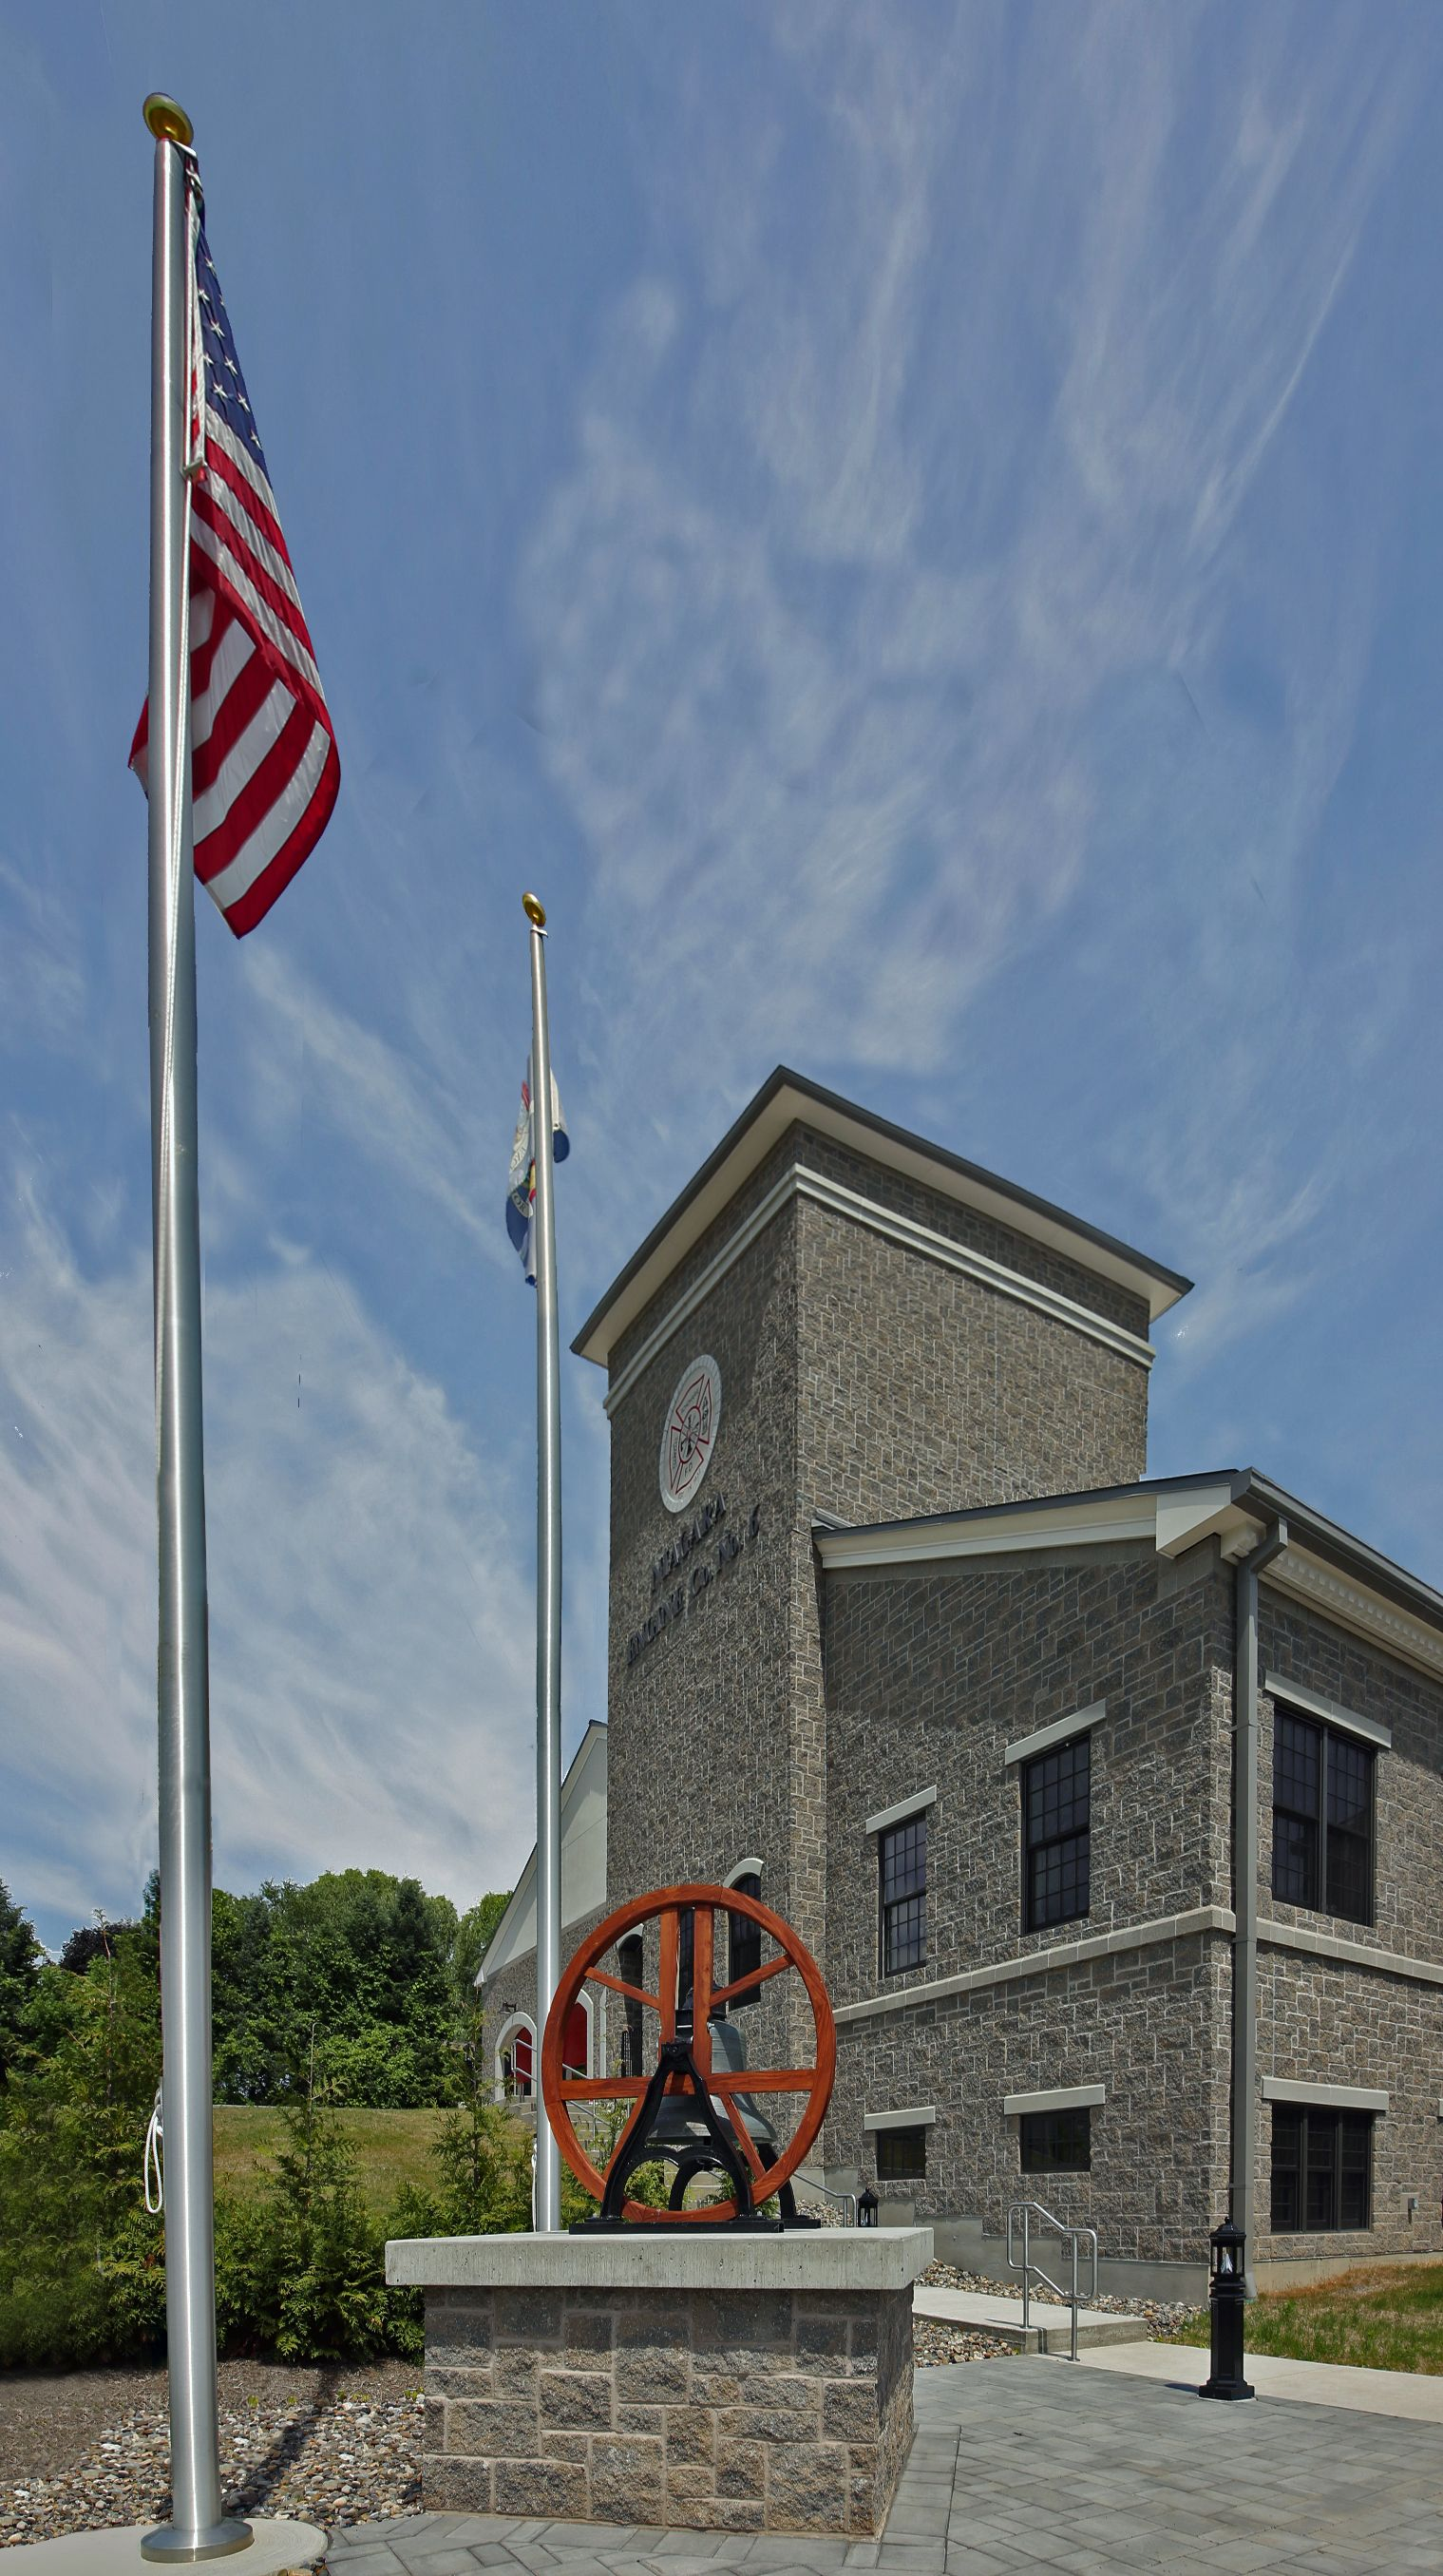 Home Fire station, Historical architecture, House fire